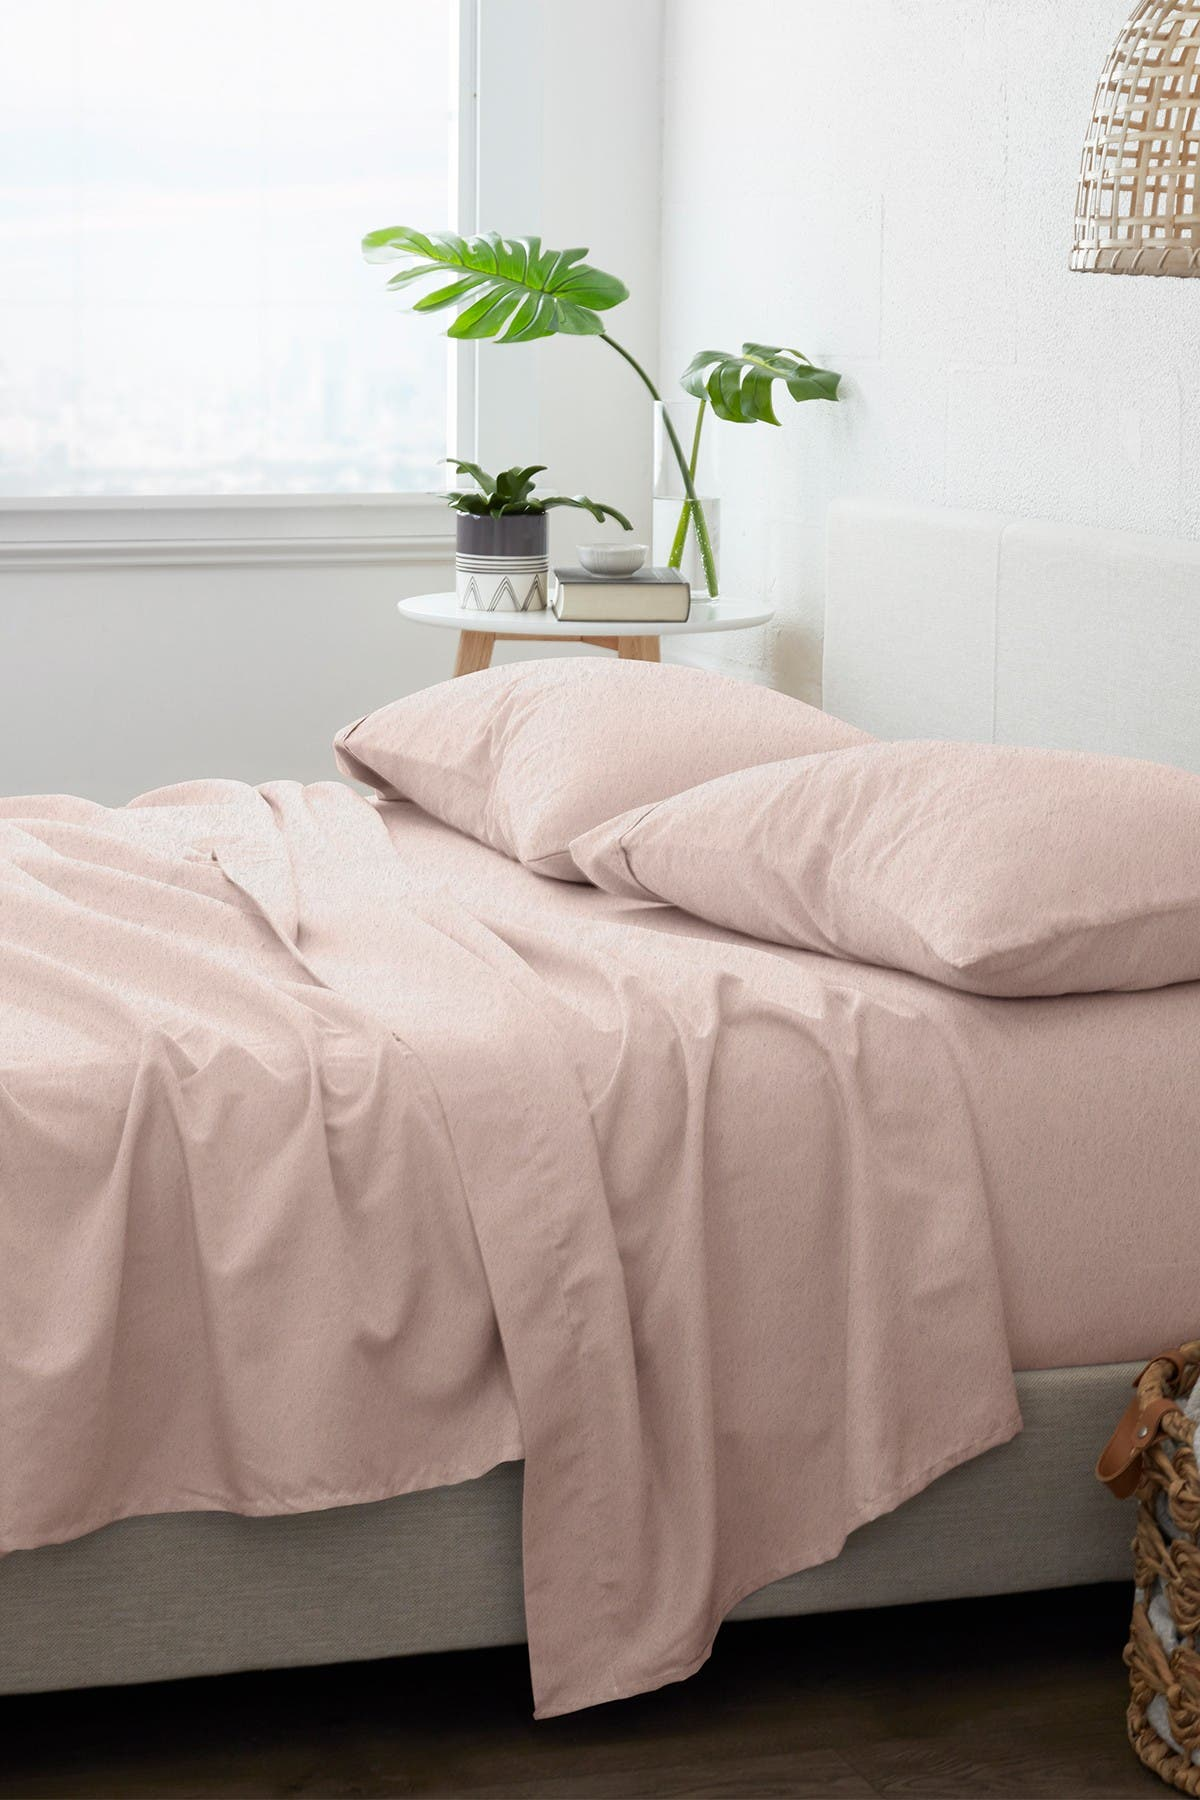 Image of IENJOY HOME Home Collection Premium 4-Piece Queen Ultra Soft Flannel Bed Sheet Set - Blush